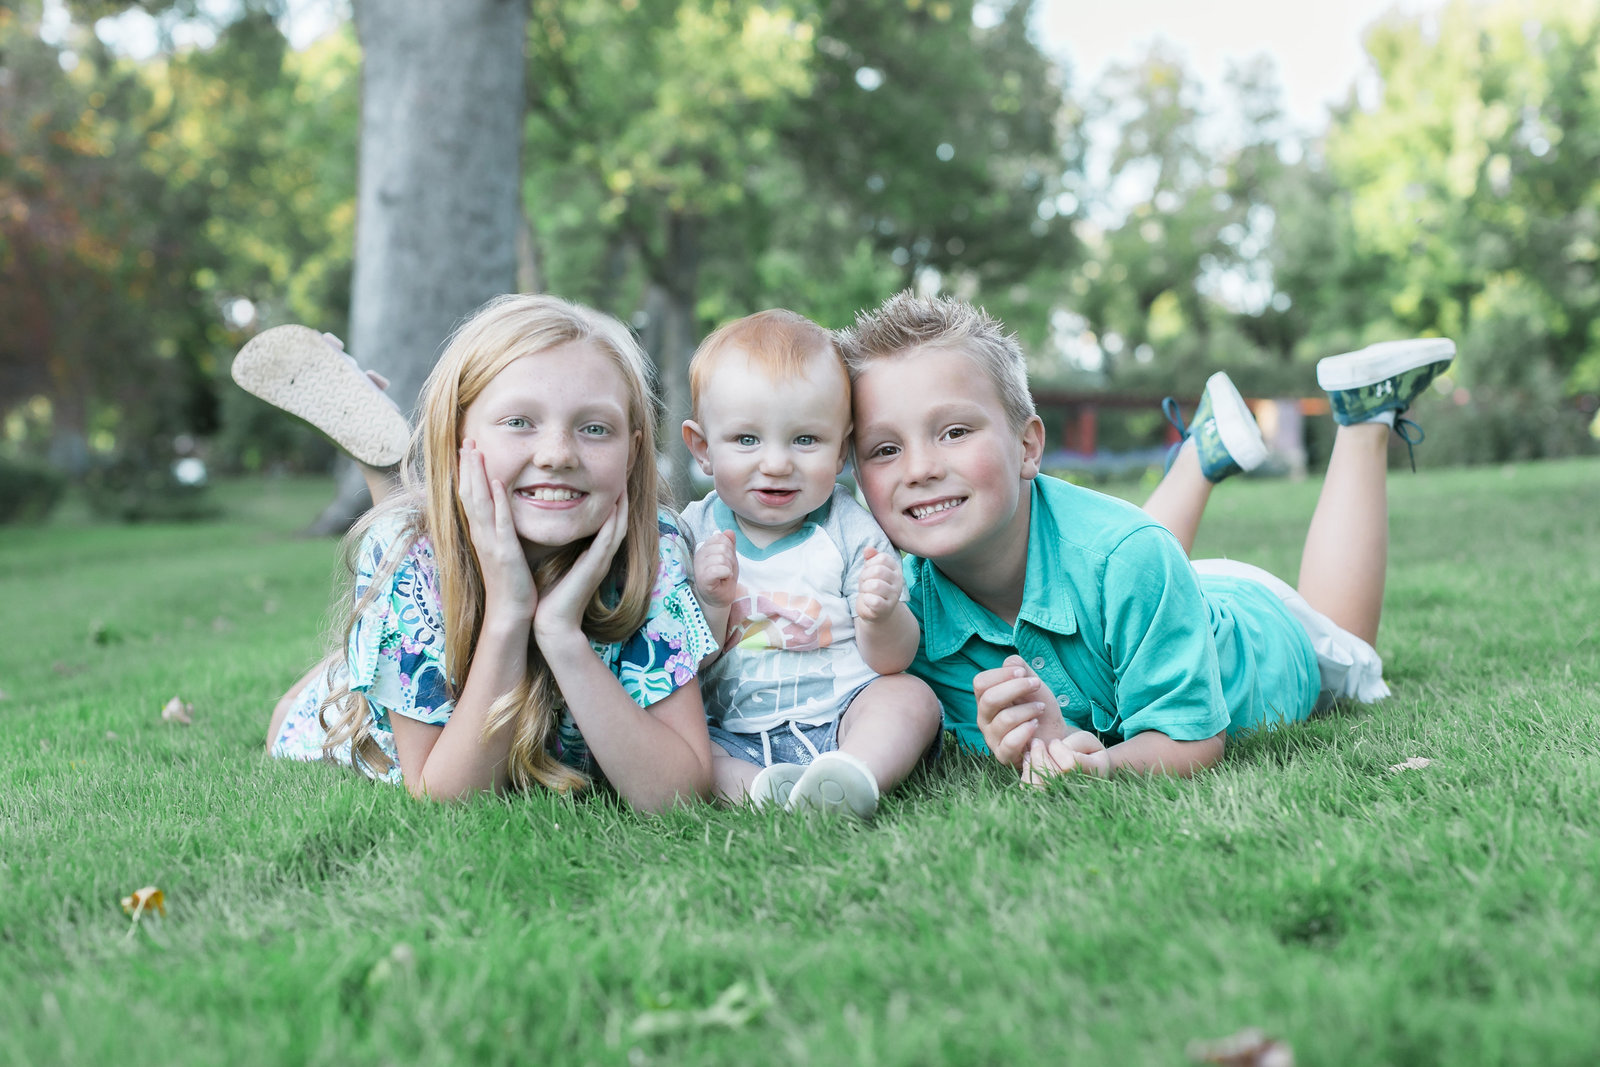 JessFamily_BethanyMelvinPhotography_39